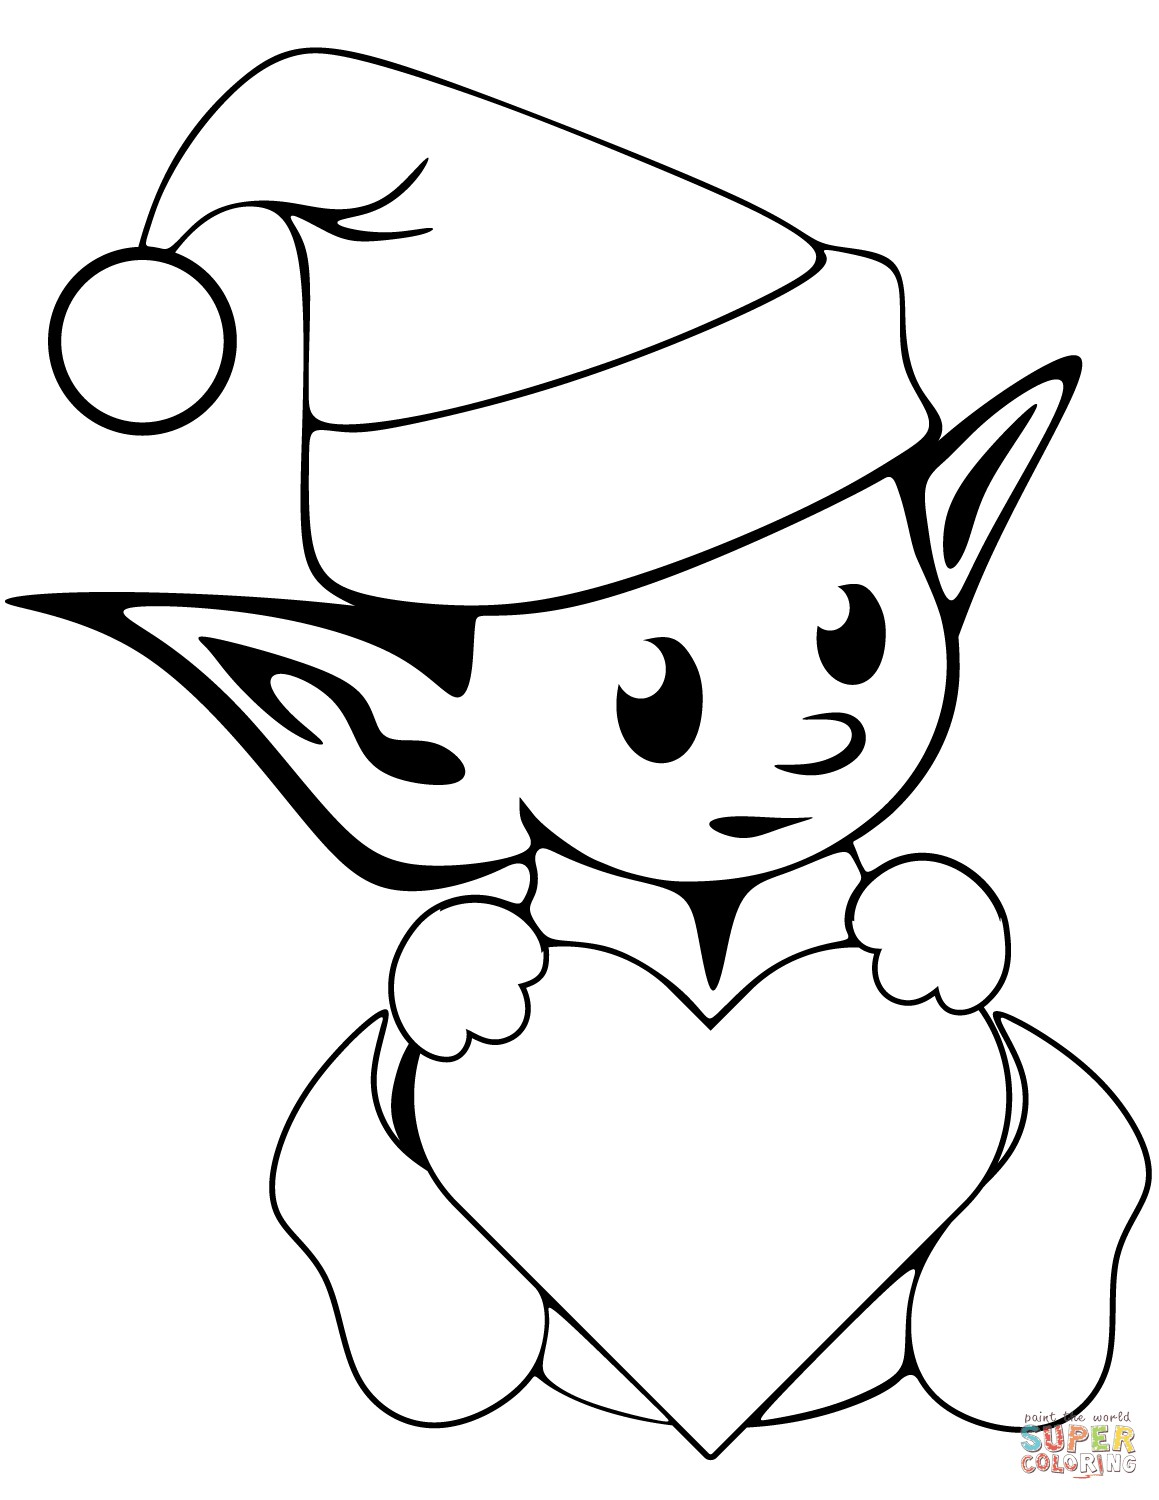 1159x1500 Christmas Elf Drawing At Getdrawings Luxury Of Coloring Pages Free